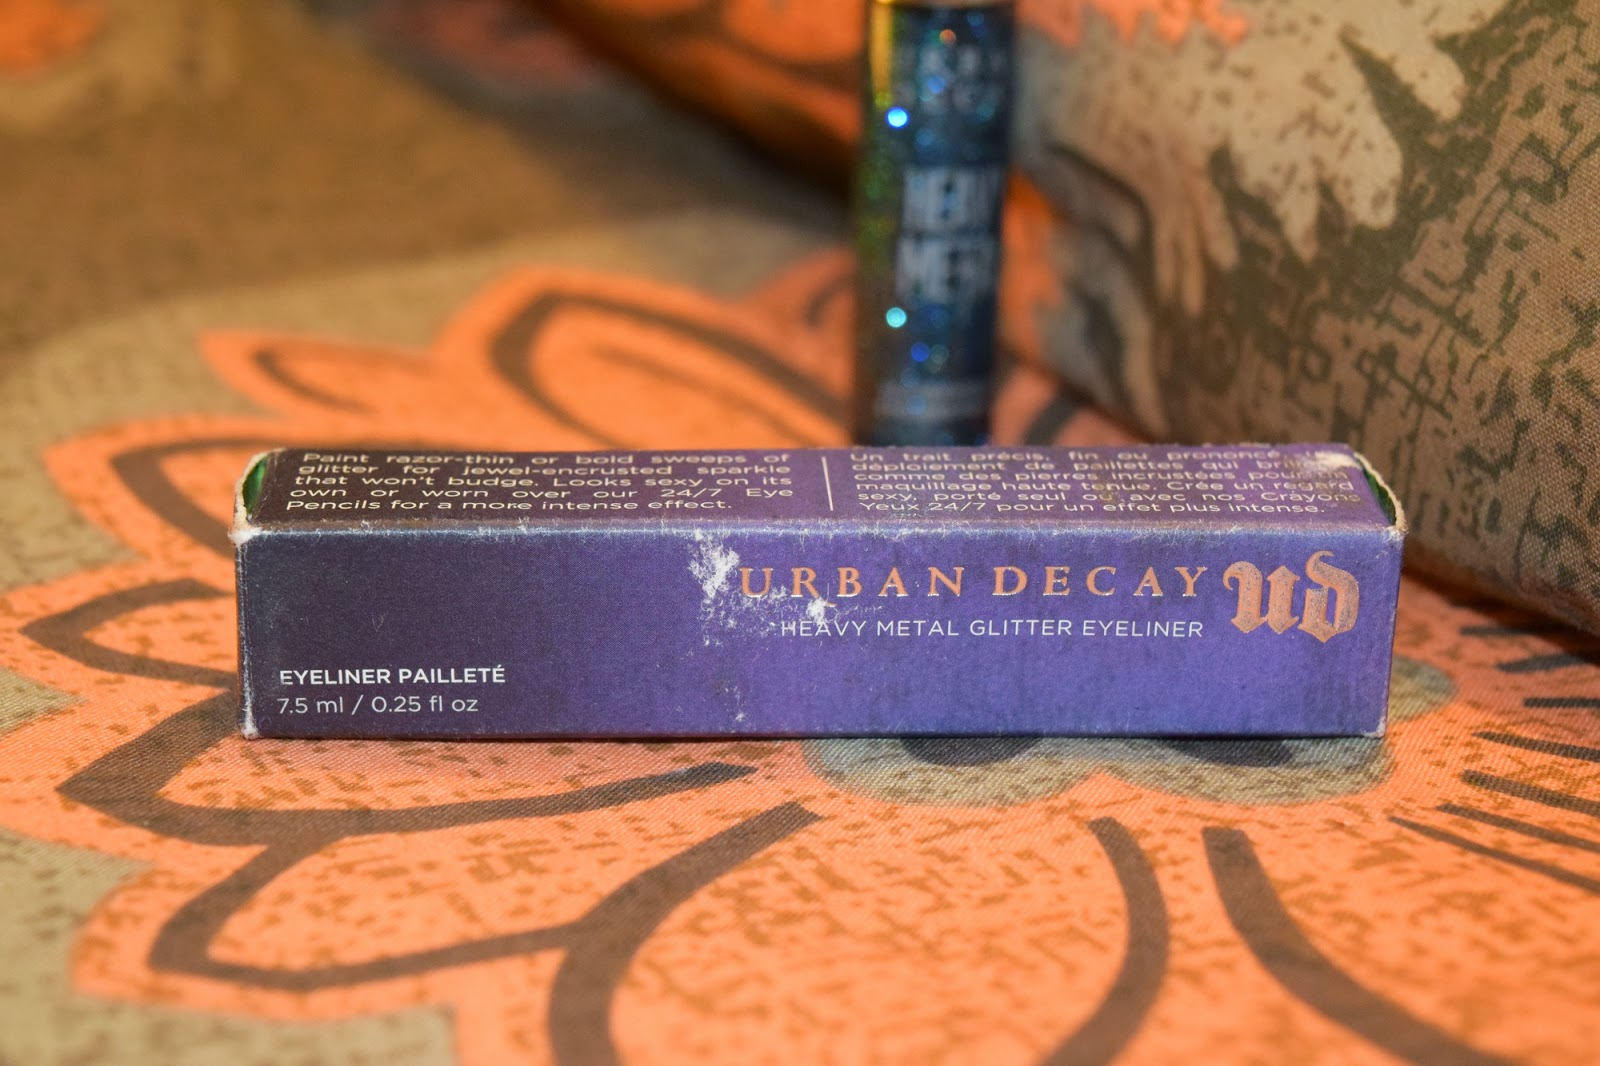 Heavy Metal Glitter Eyeliner in Spandex by Urban Decay